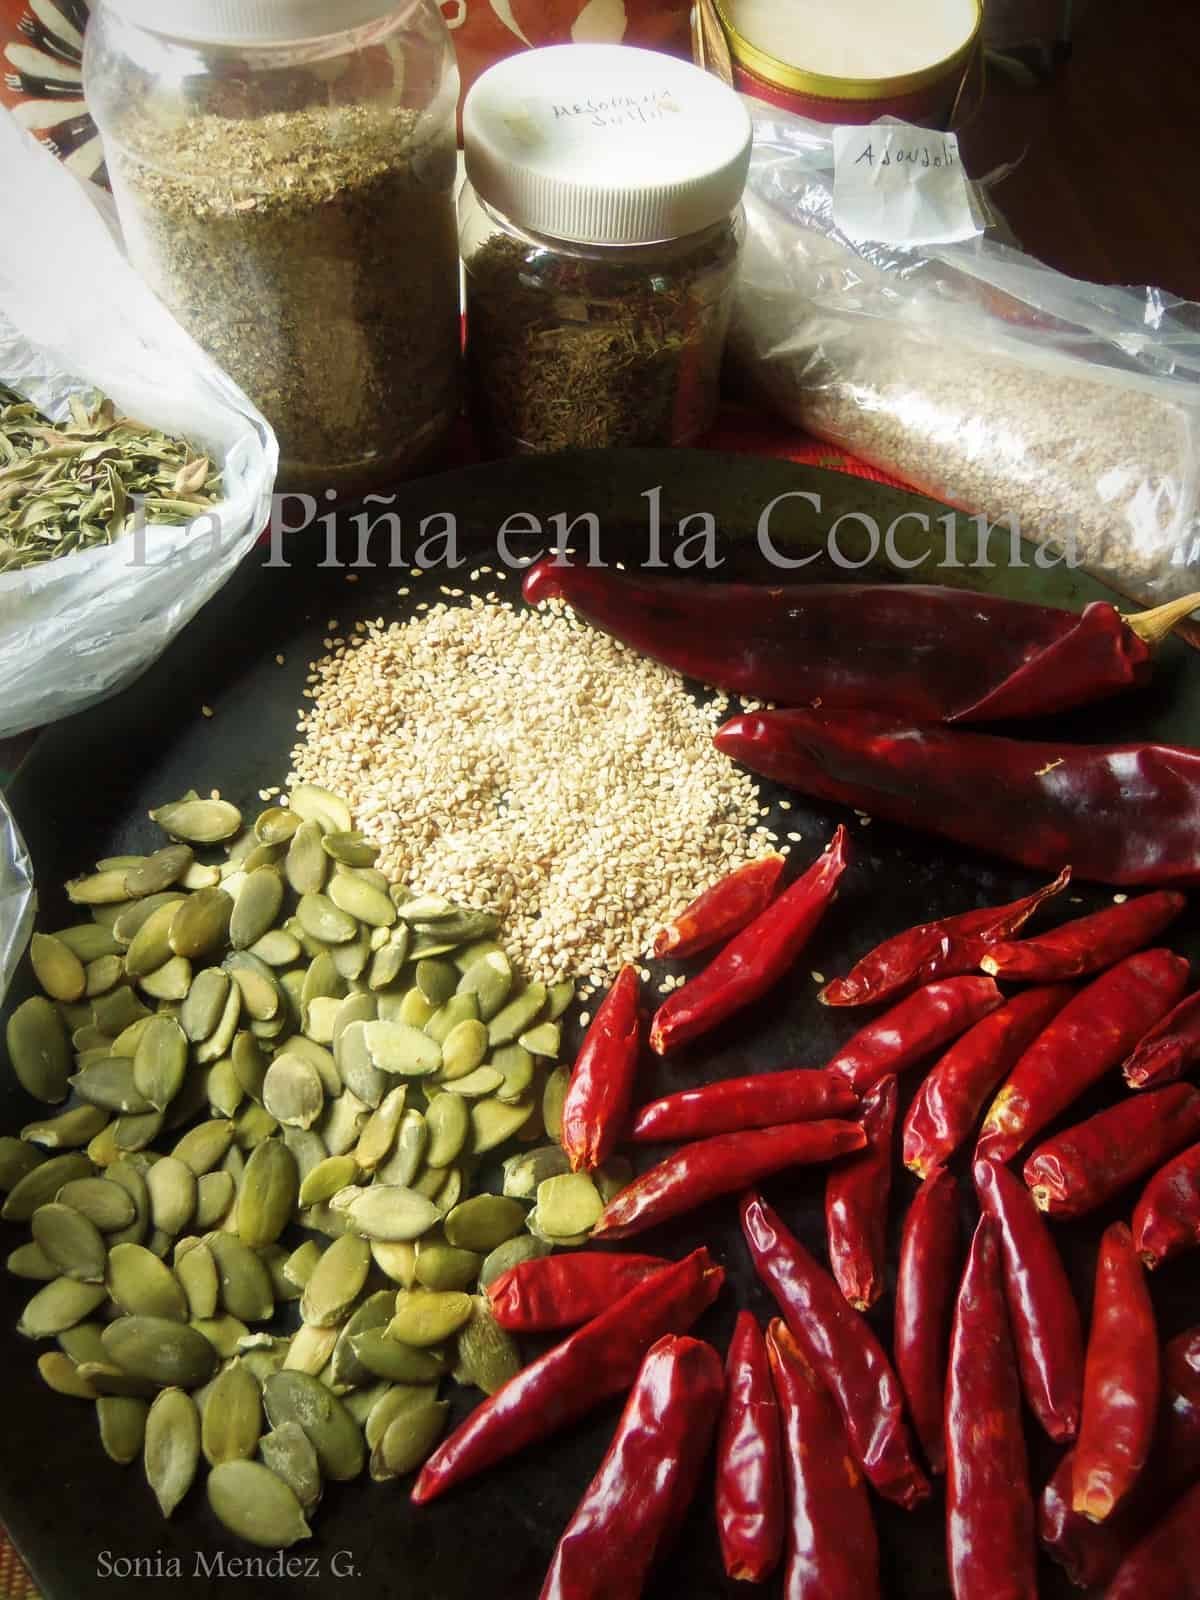 Dried chiles, herbs,nuts and seeds are all essential to an authentic Mexican kitchen.